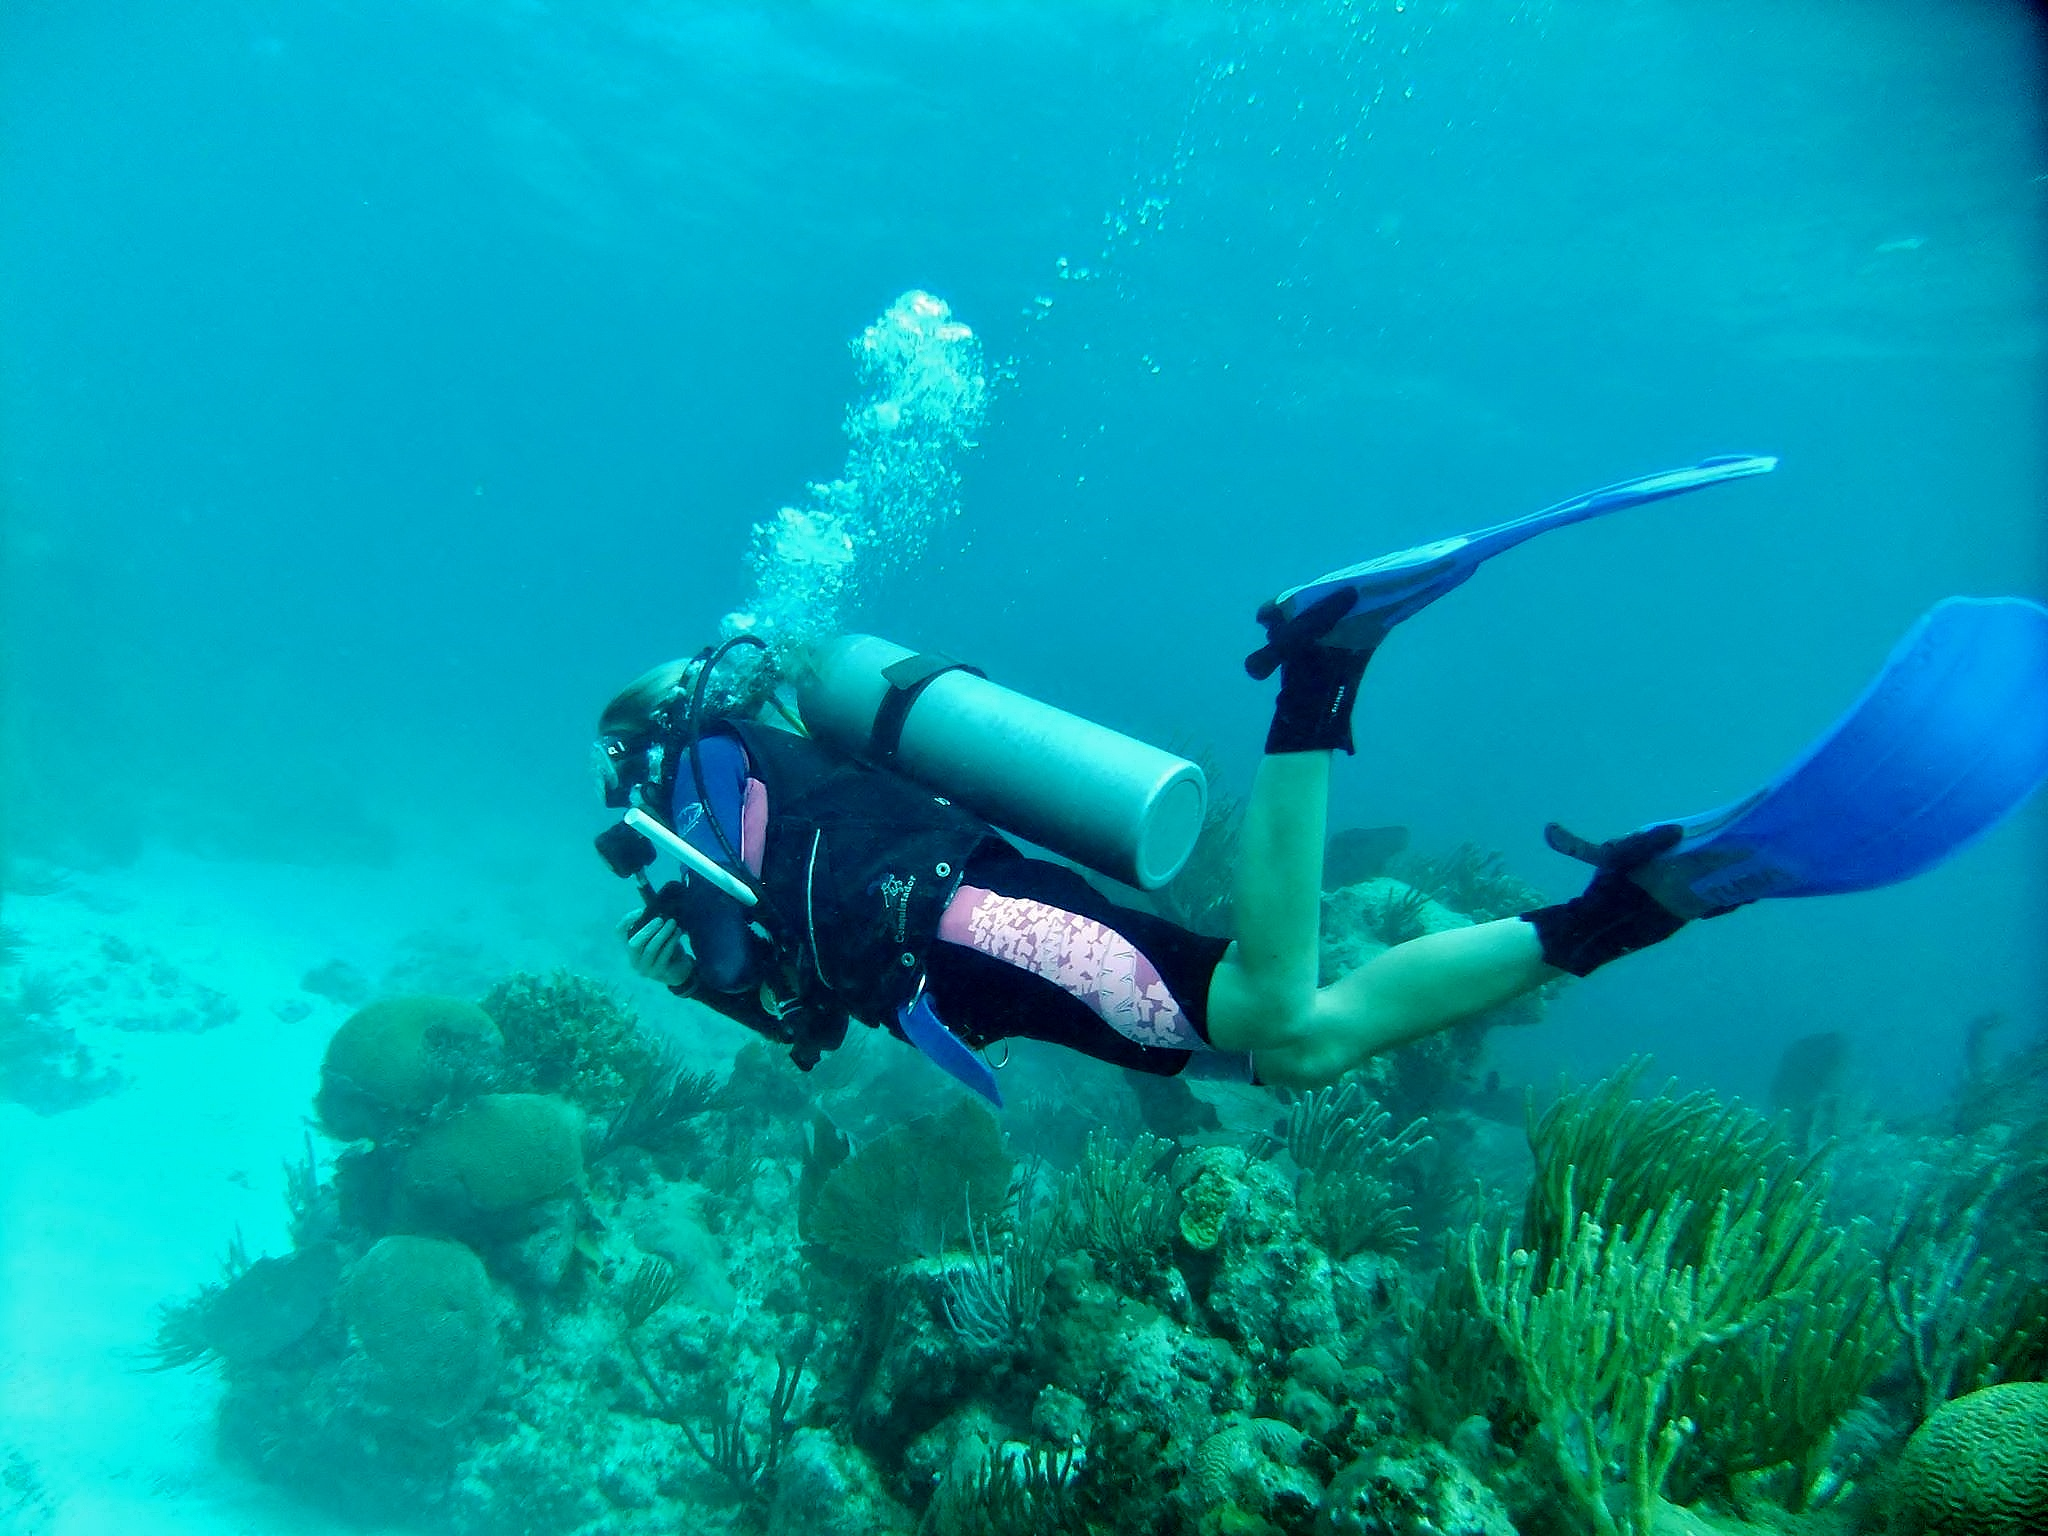 Marine expedition and padi divemaster dive center internship gvi usa enter the global scuba diving industry with a professional diving qualification combined with work experience and marine conservation training xflitez Images